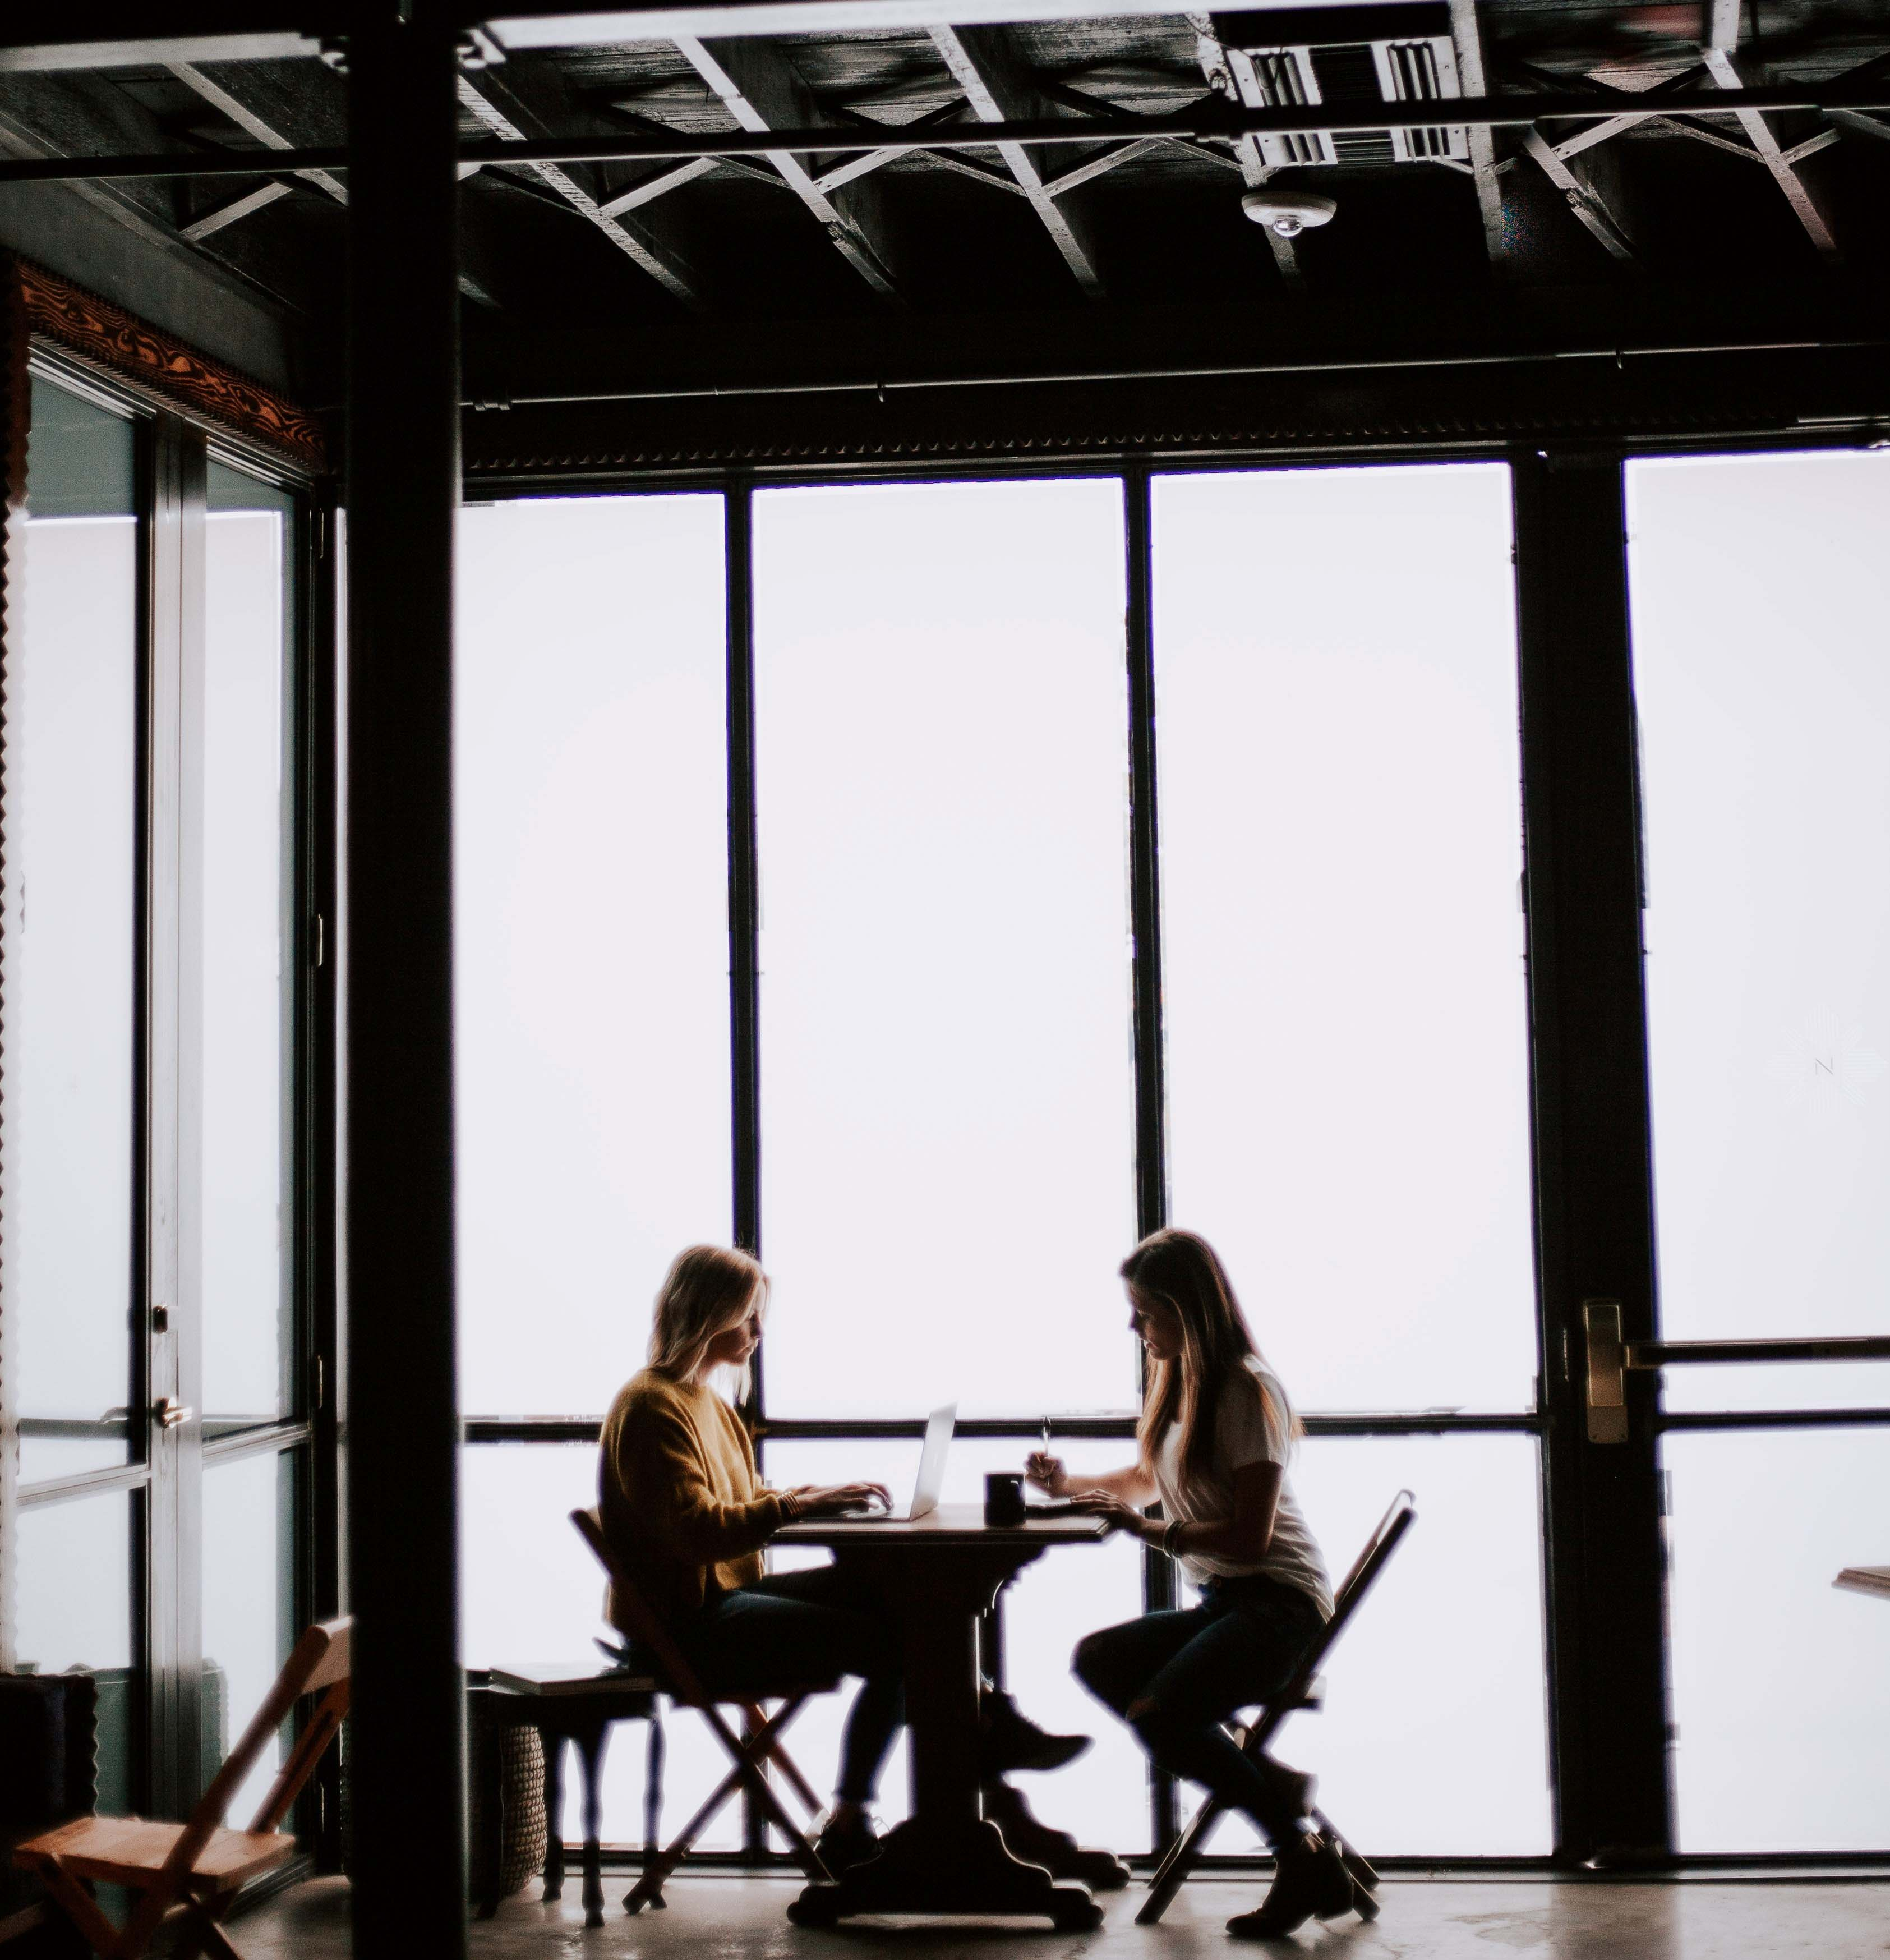 Two women sit in conversation at a table in front of a large window.